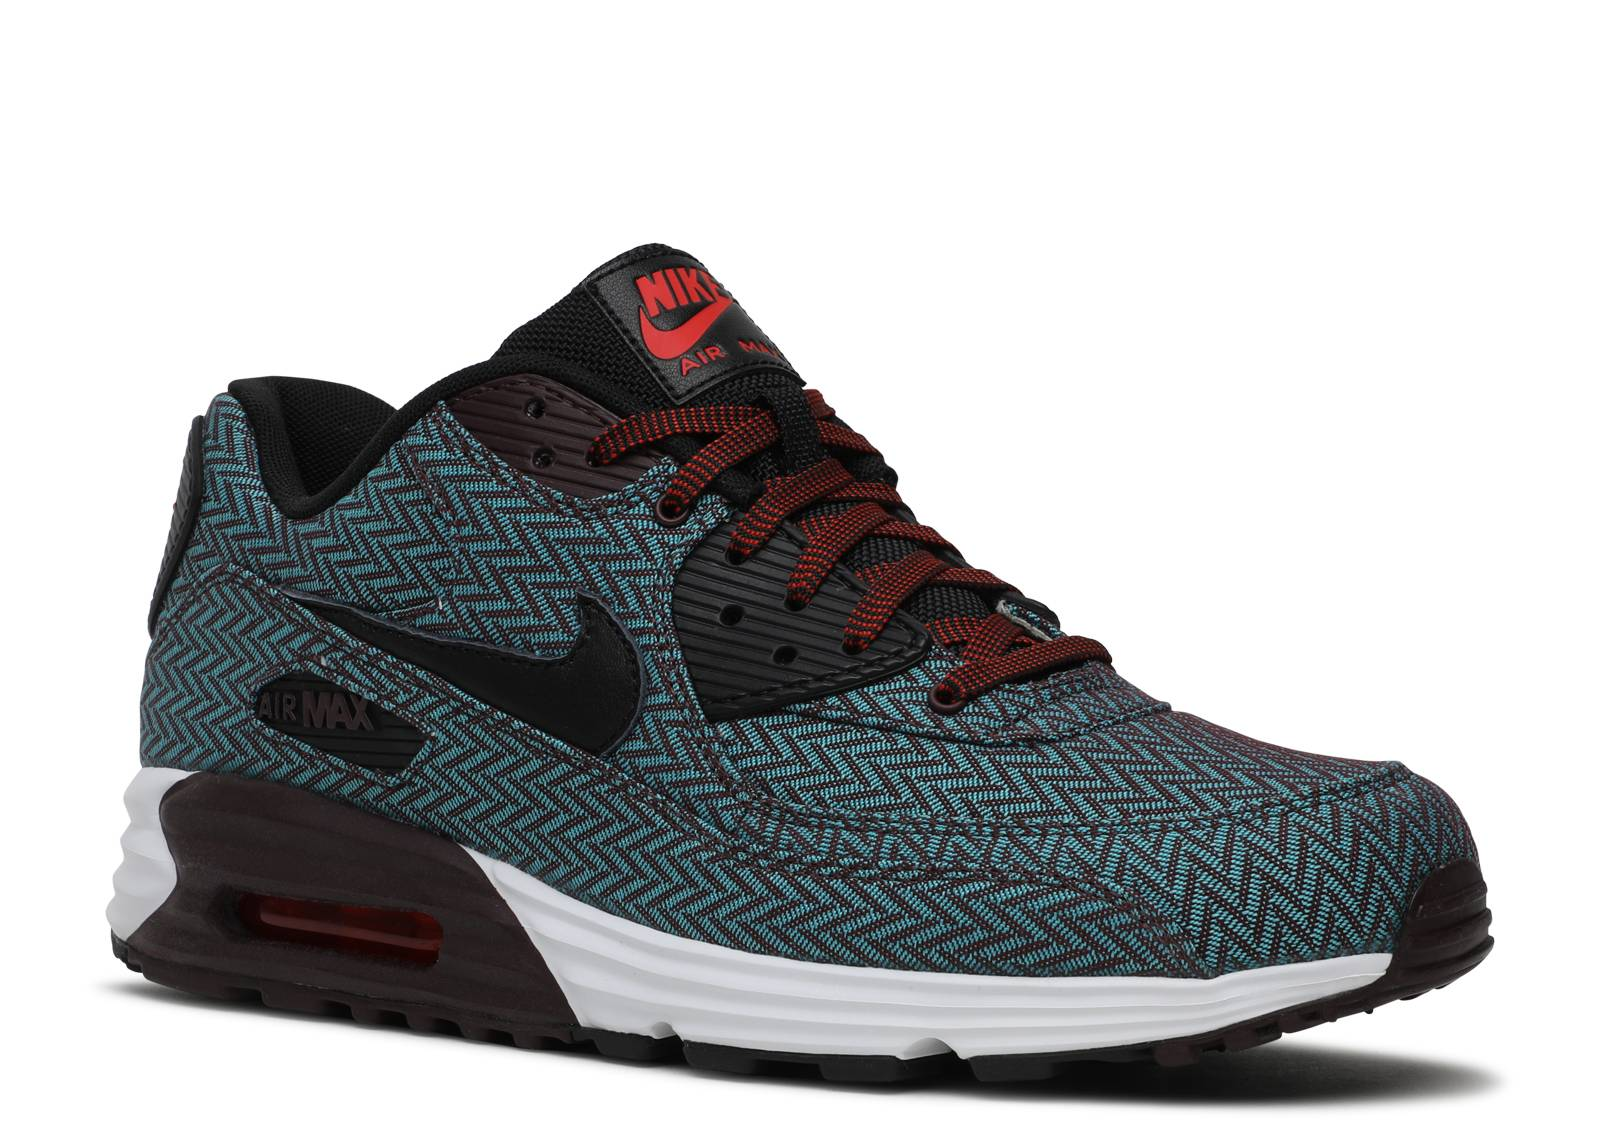 Suits And Ties Nike Air Max 90 Lunar | Quarter 4 summer